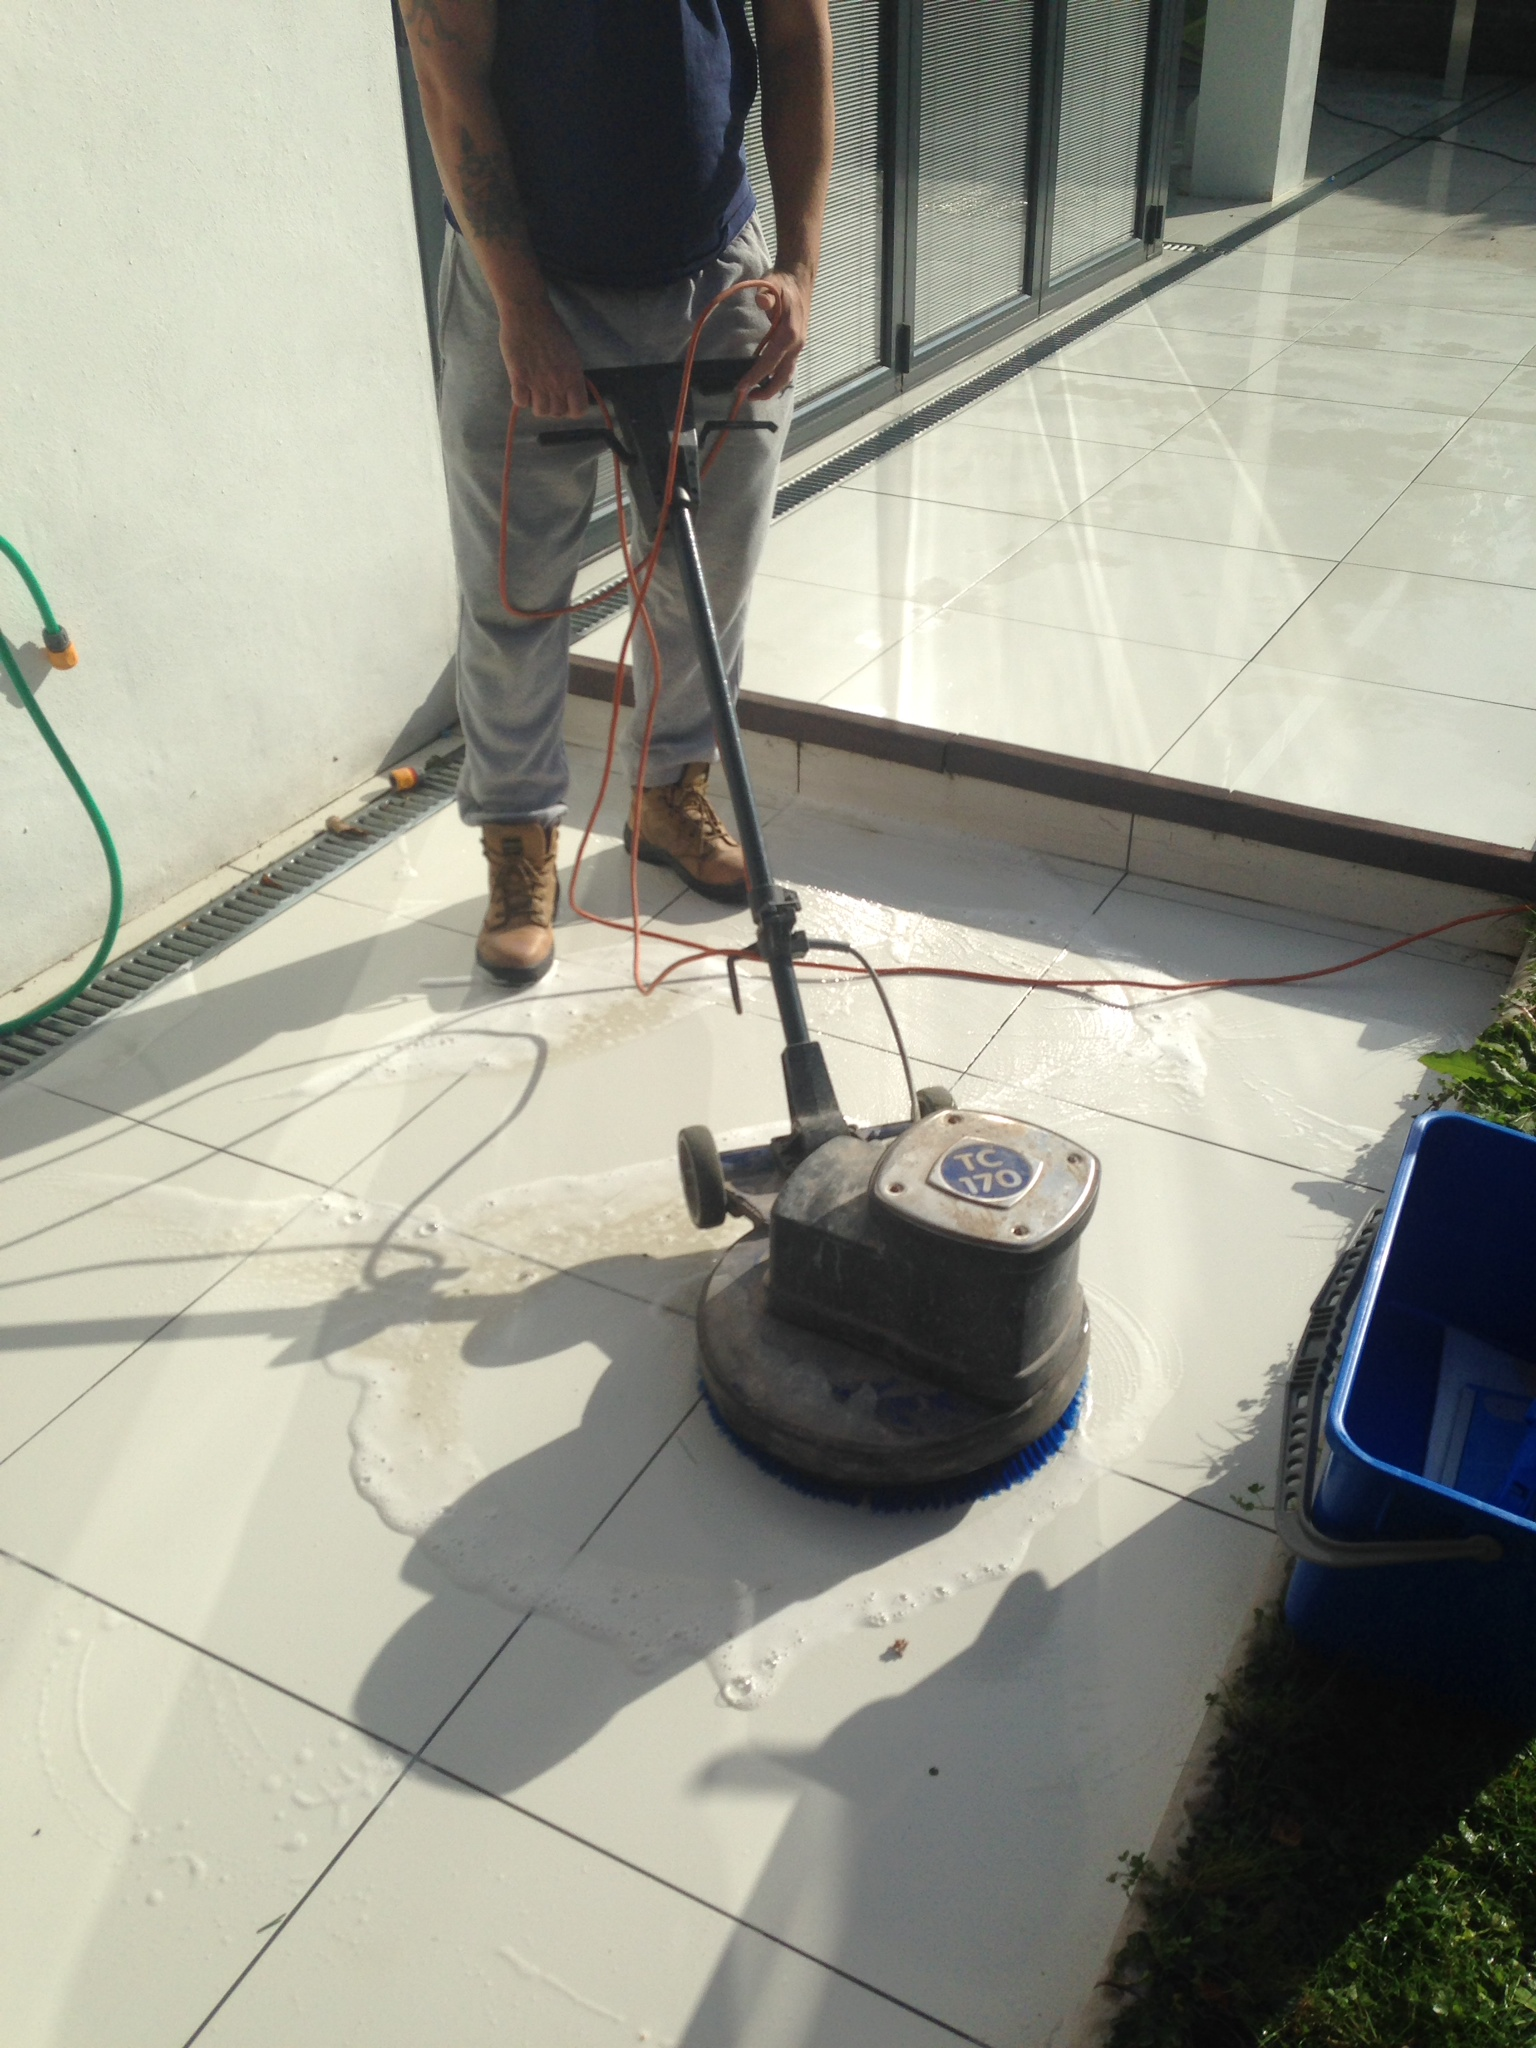 Applying Ant-Slip to a shiny Porcelain Patio